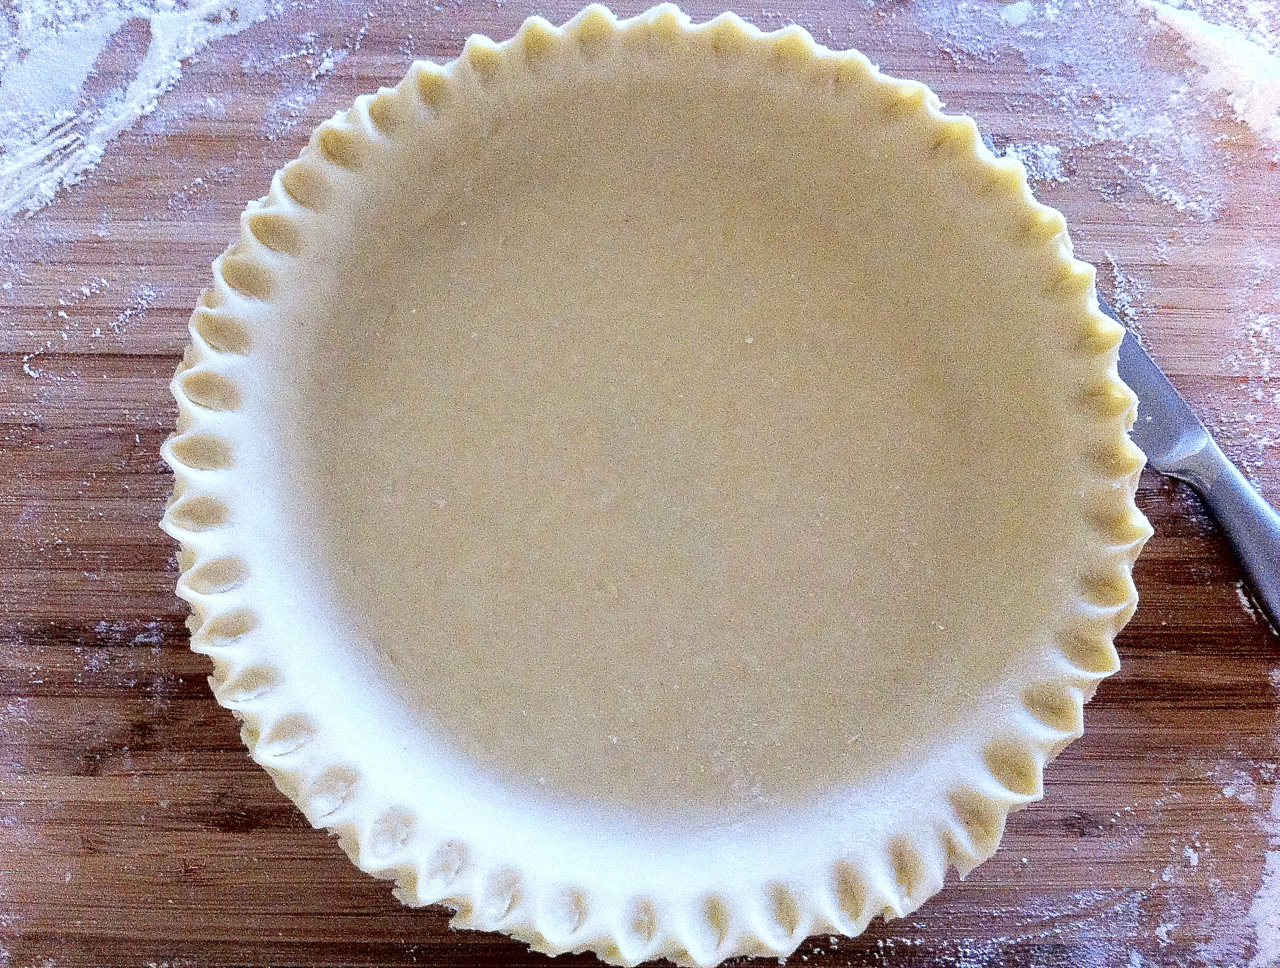 ... Cooking with Love: Homemade Pastry Dough: Sweet or Savory